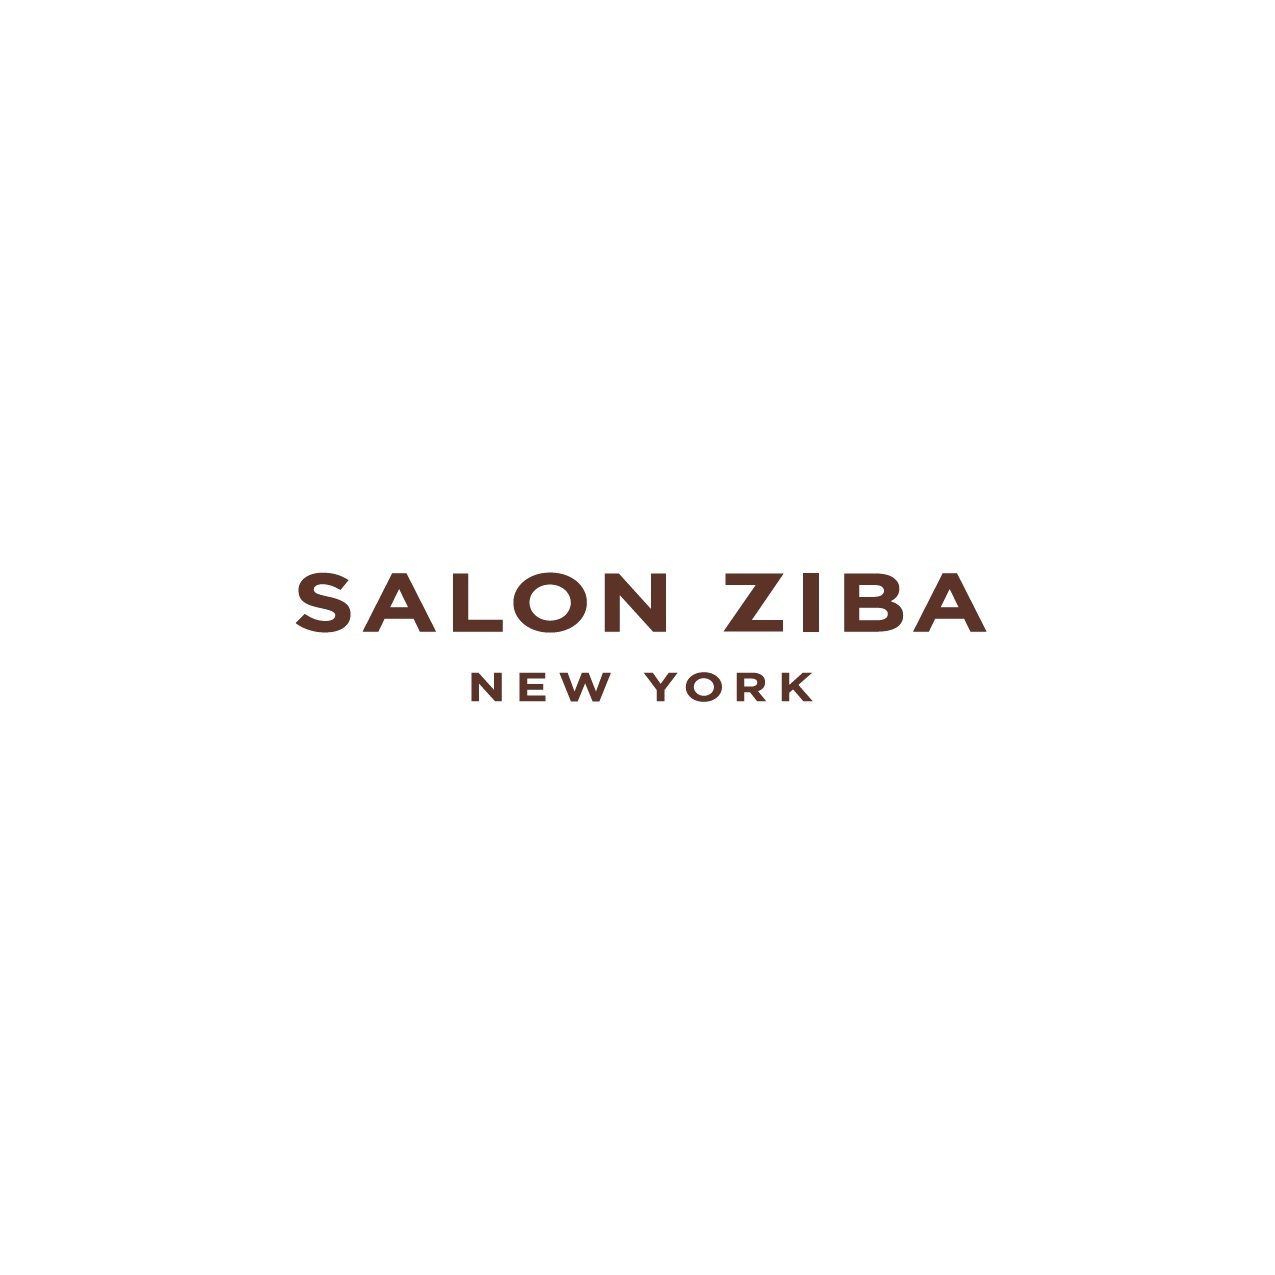 salon ziba in new york ny 10011